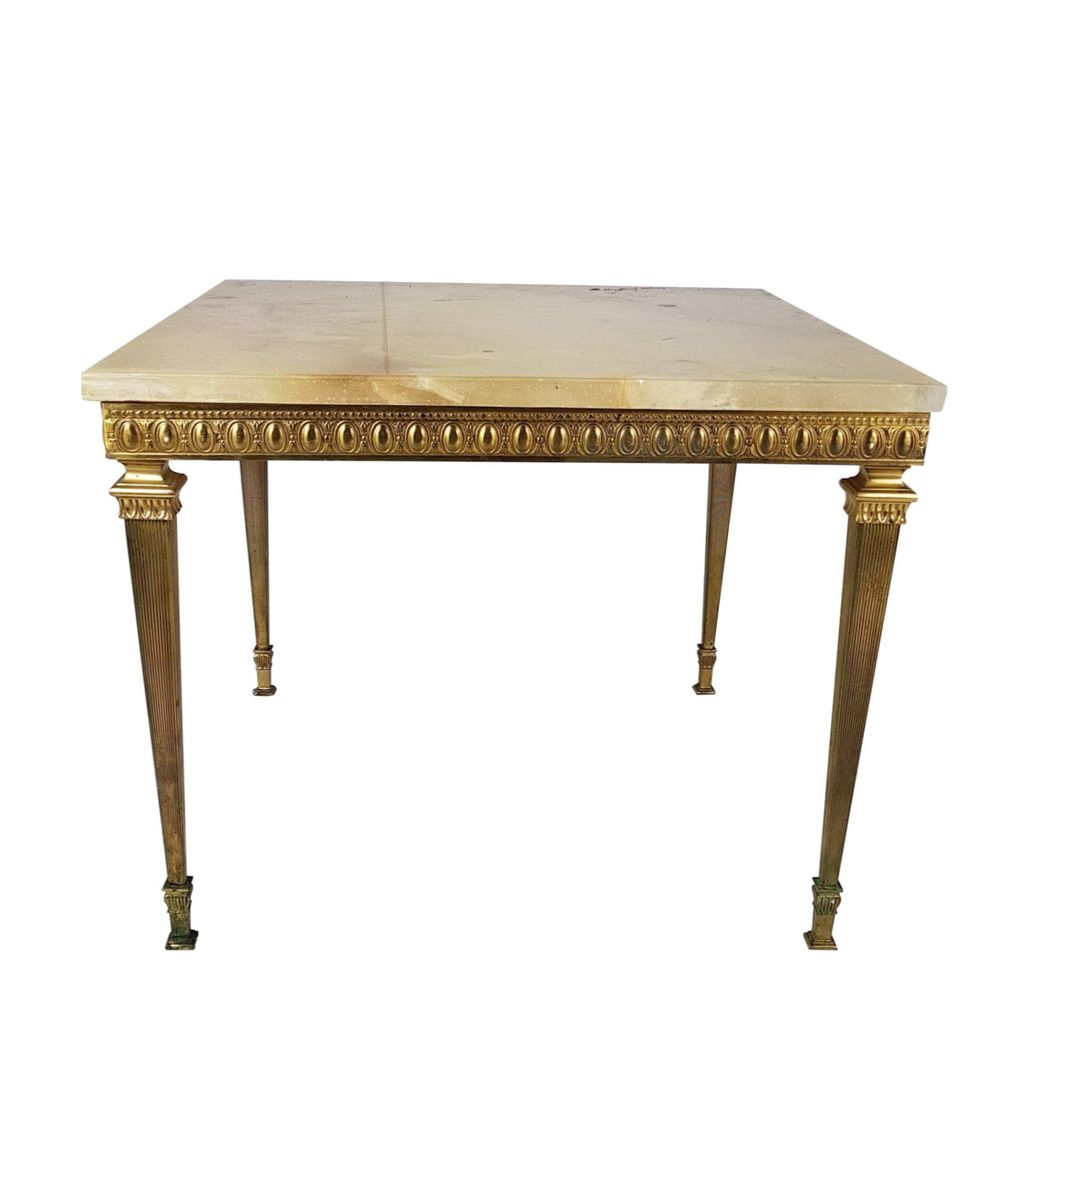 Marble Coffee Table For Sale Singapore: French Brass Coffee Table With Marble Top, 1930s For Sale